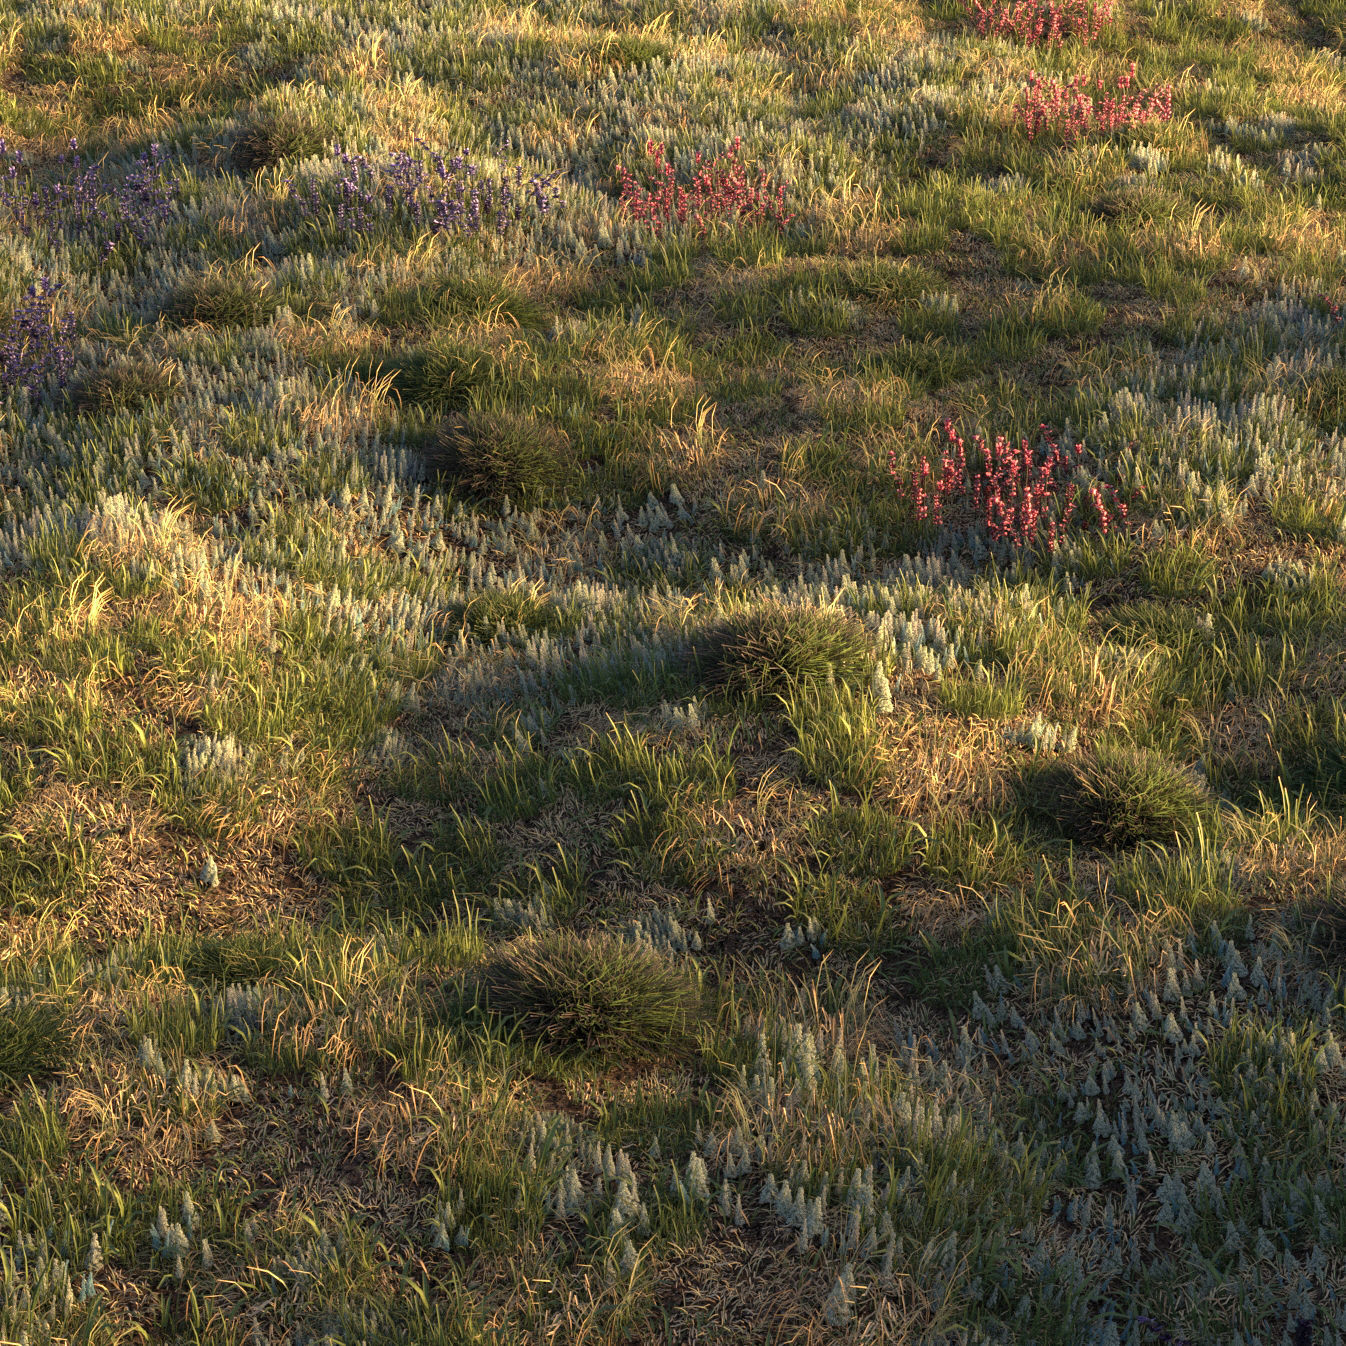 Field grass and corona scatter